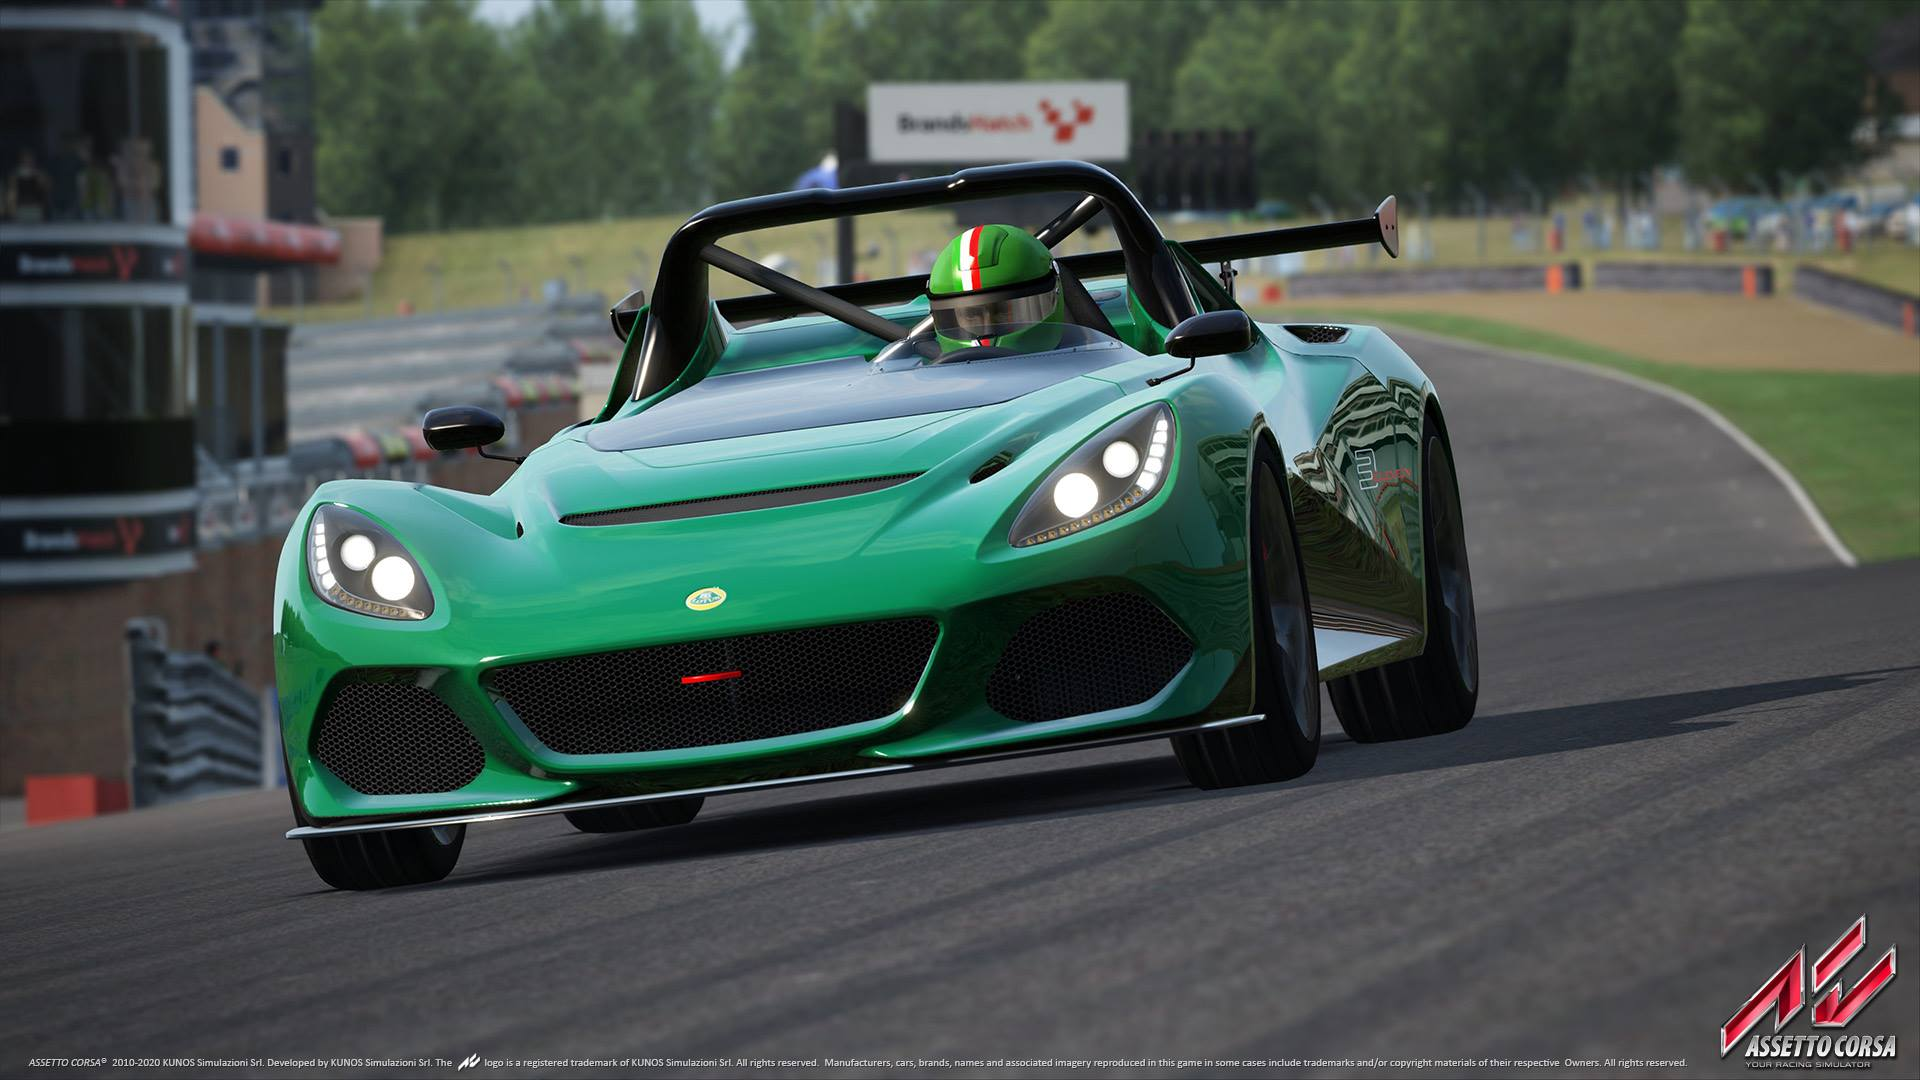 DLC - Ready To Race | Assetto Corsa Mods